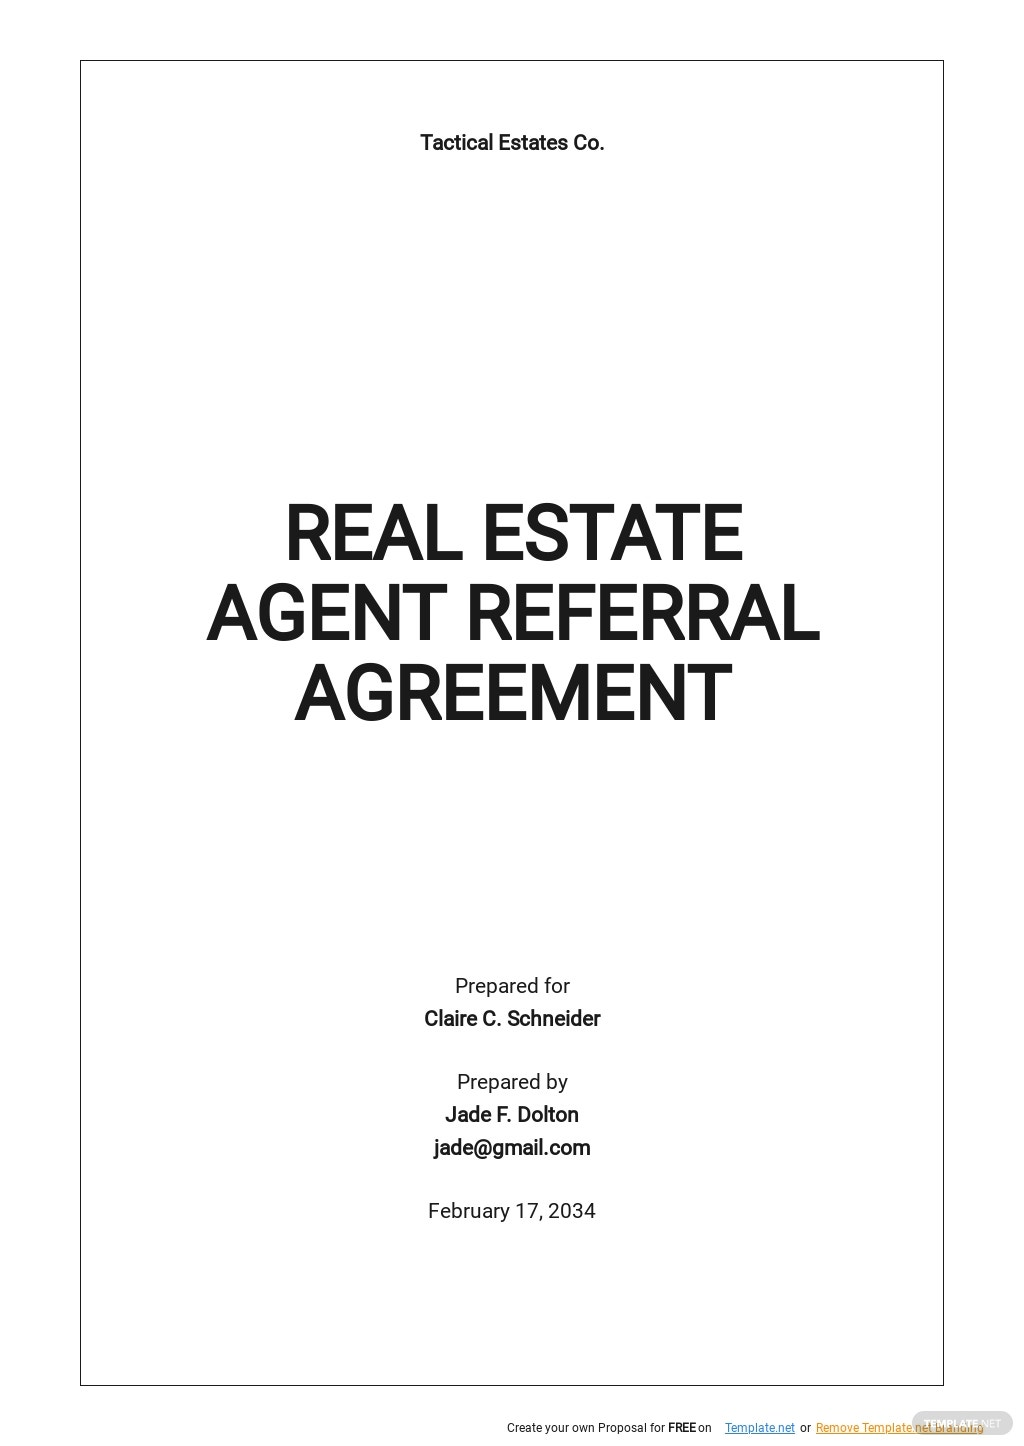 Real Estate Agent Referral Agreement Template.jpe